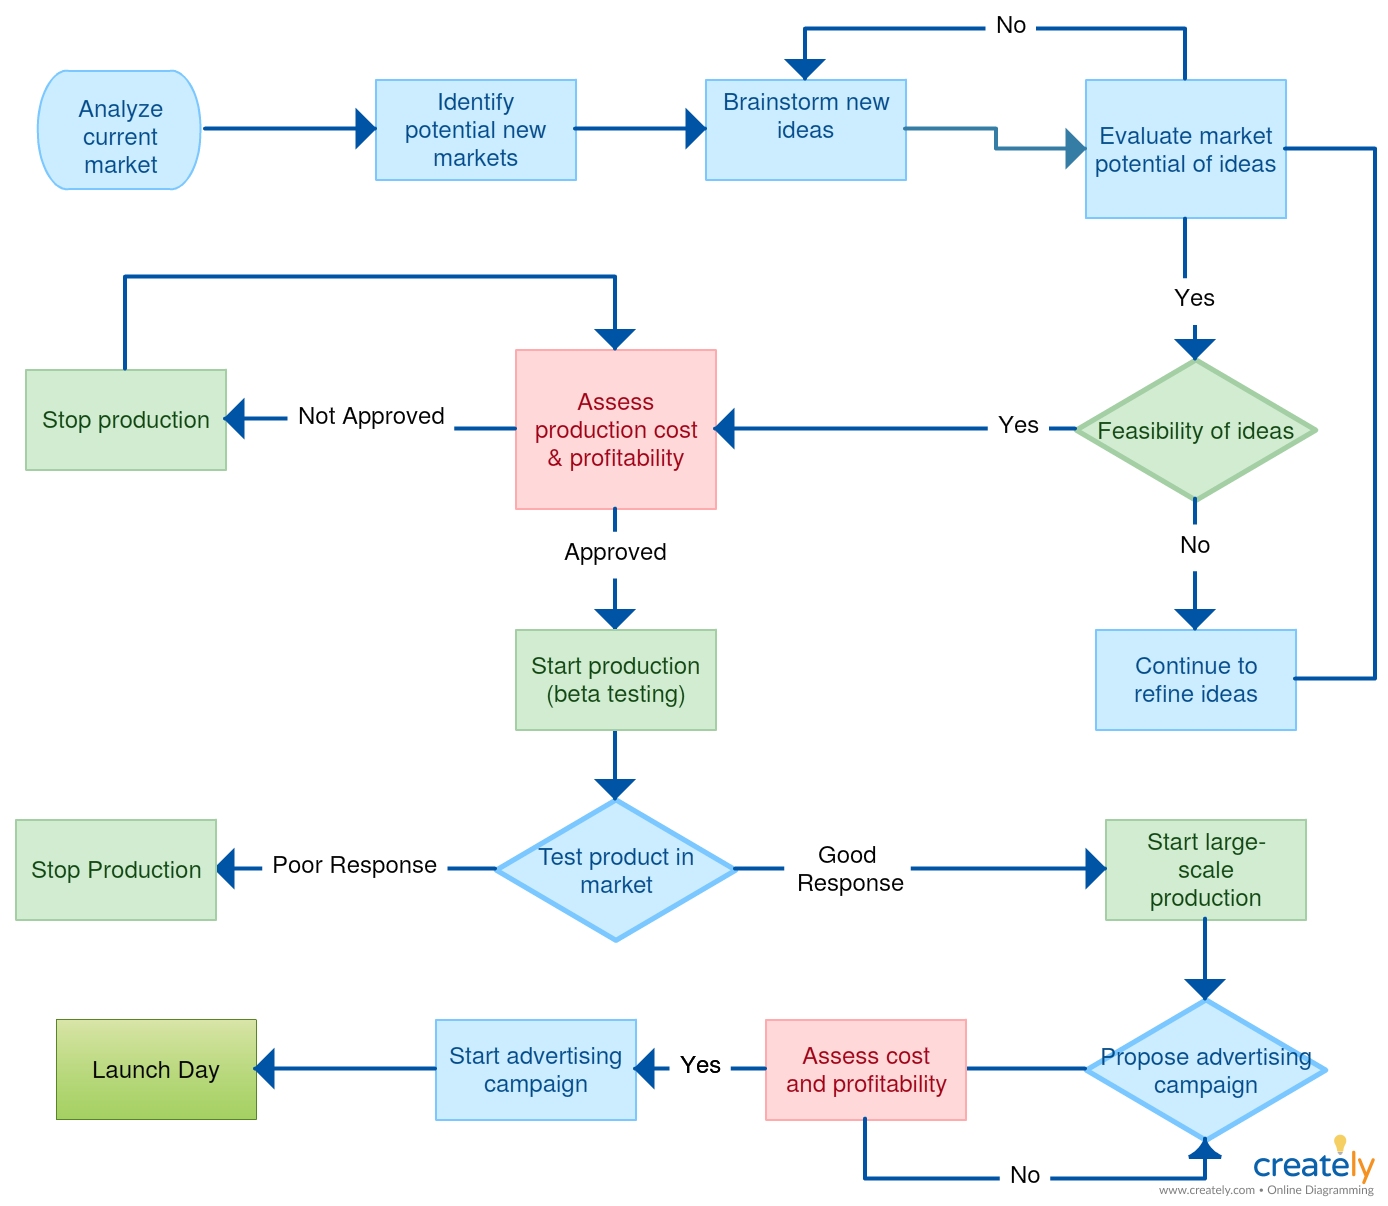 brand development process template - a flowchart showing product development process you can